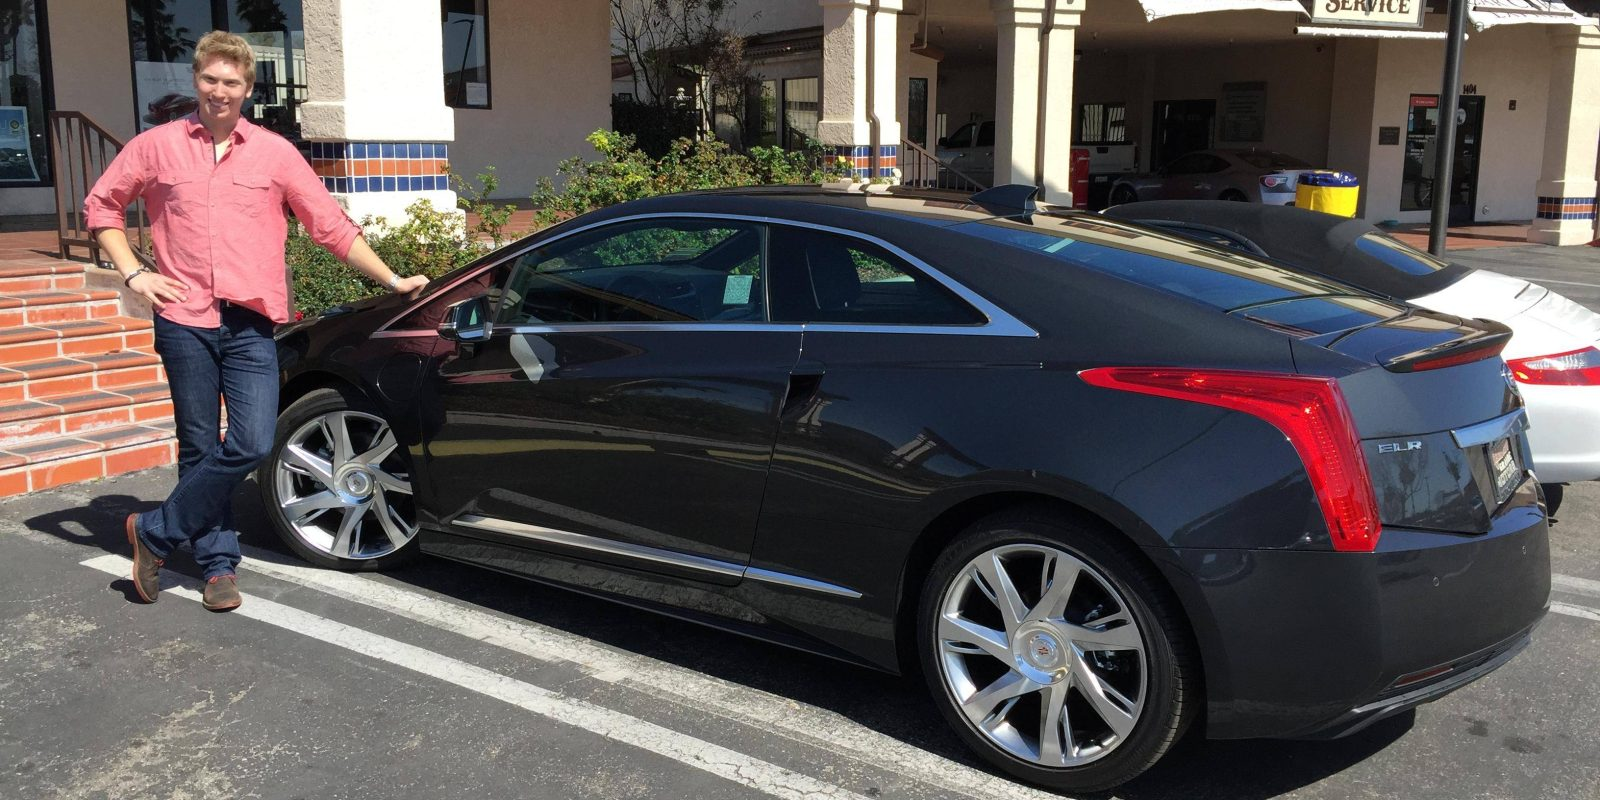 for elr cadillac says marketer news coupe was h overestimate price sale chief